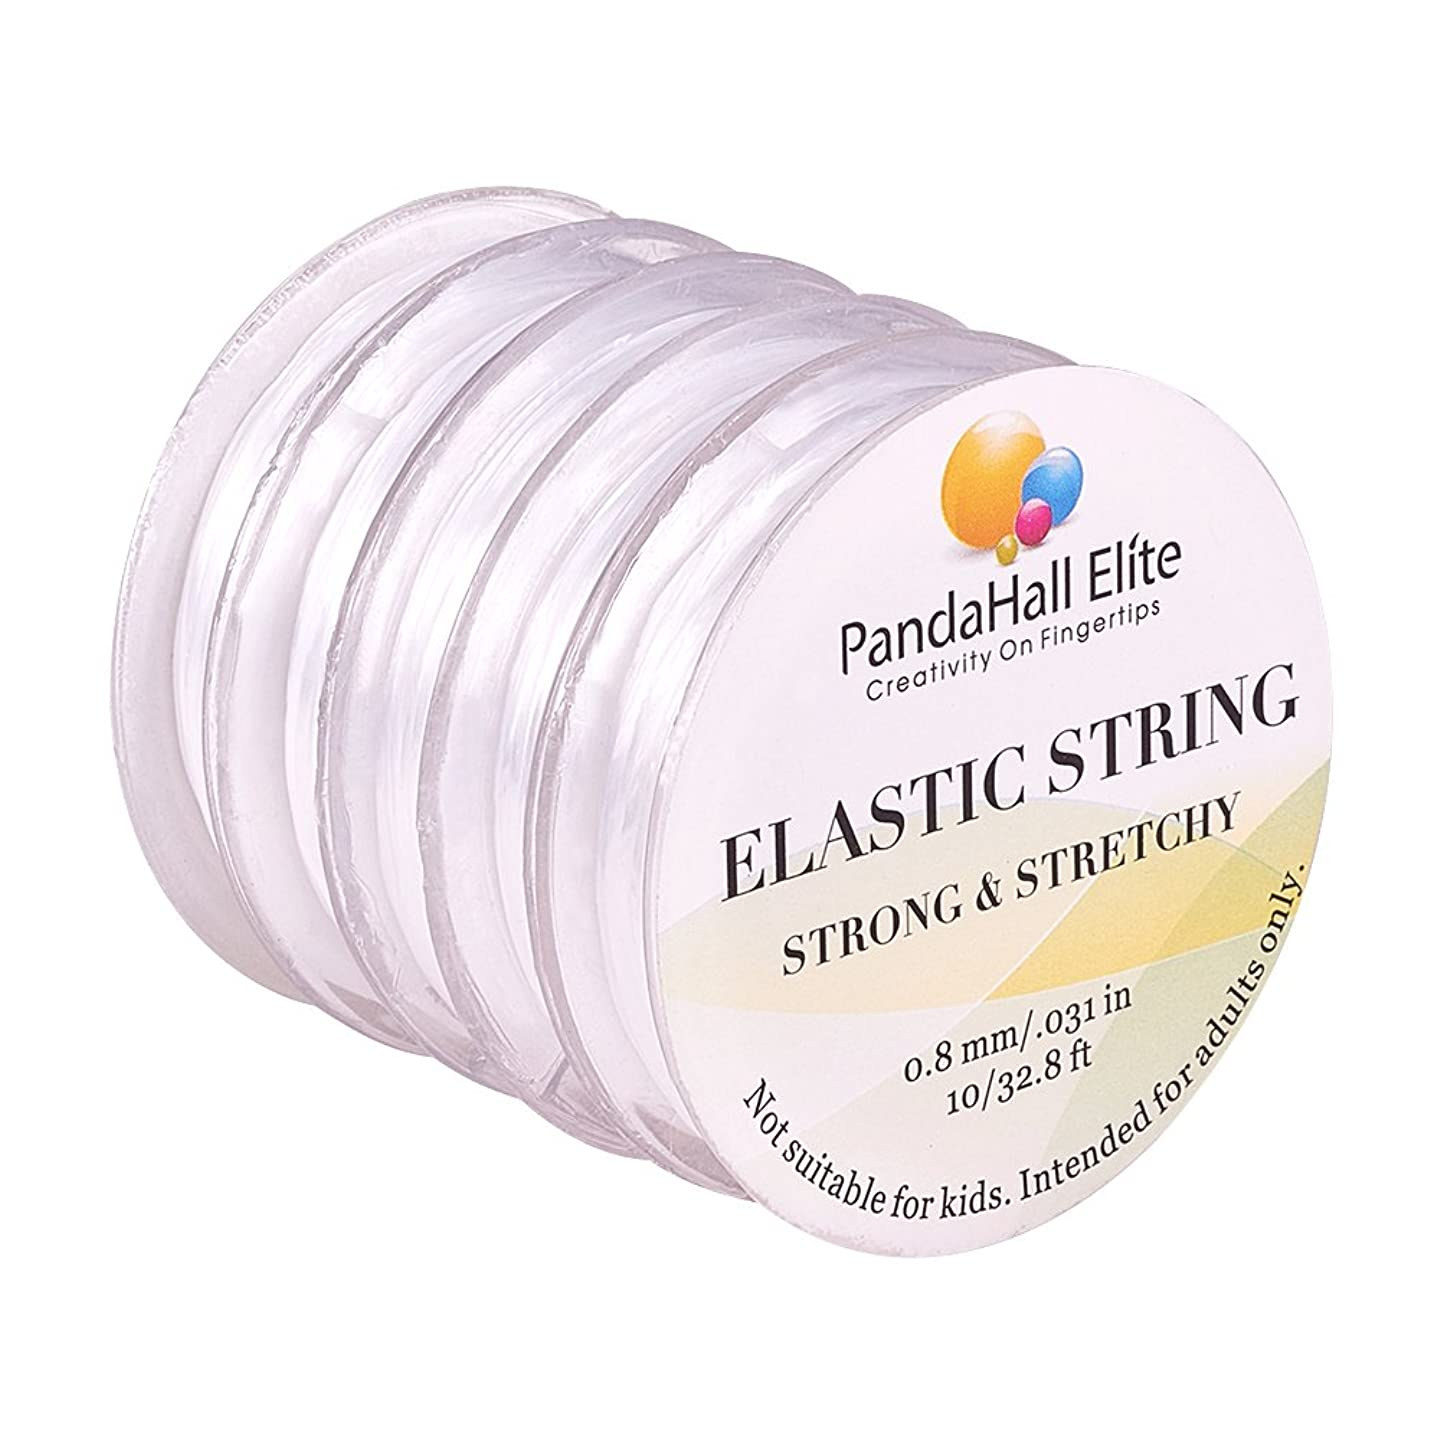 PandaHall Elite 0.8mm Elastic Stretch Polyester Threads Jewelry Bracelet String Cords 10m 5 Rolls Assortment Transparent-1